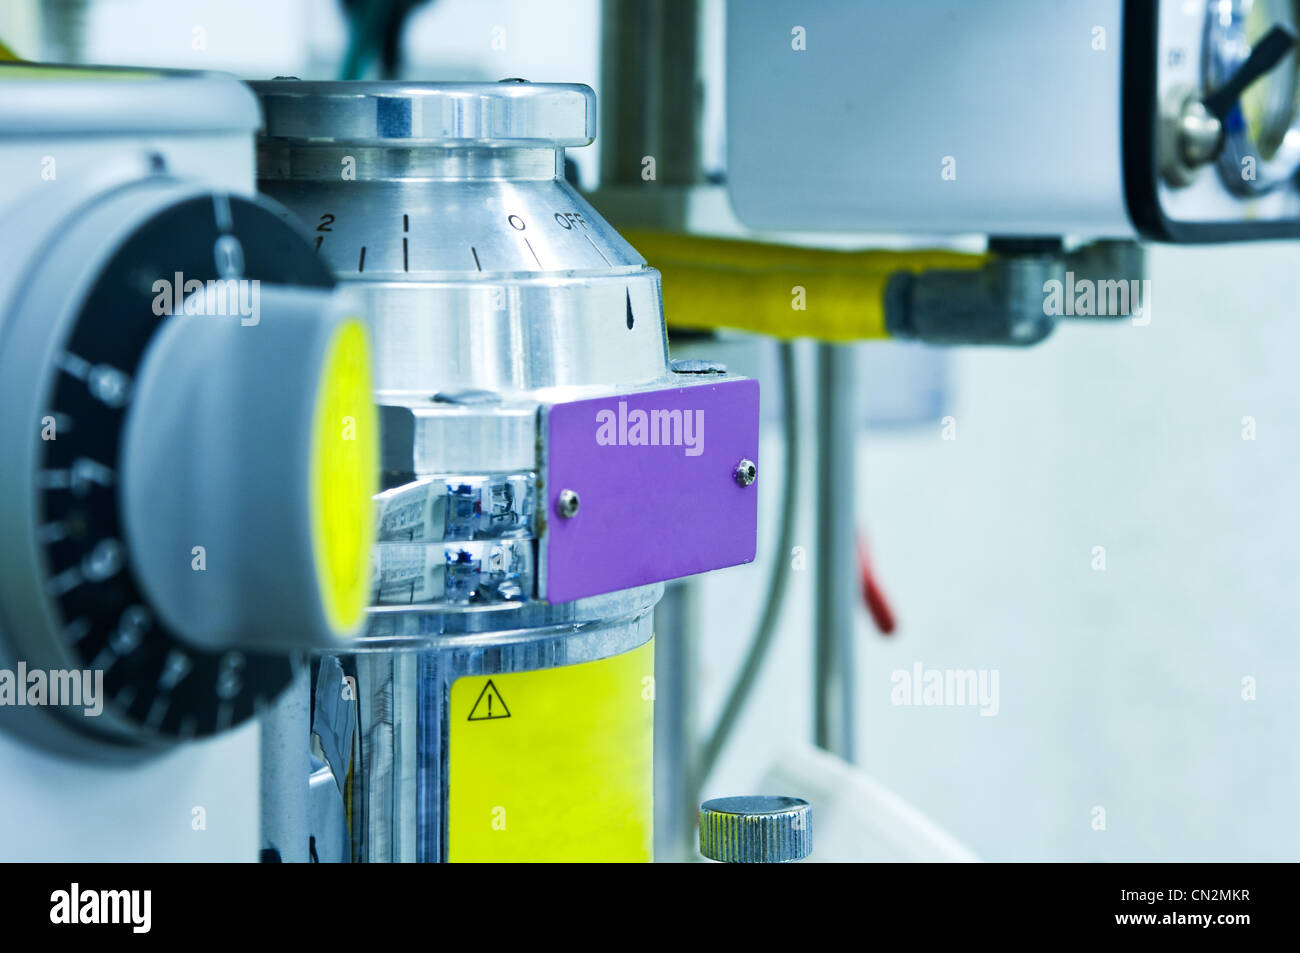 Scientific equipment - Stock Image